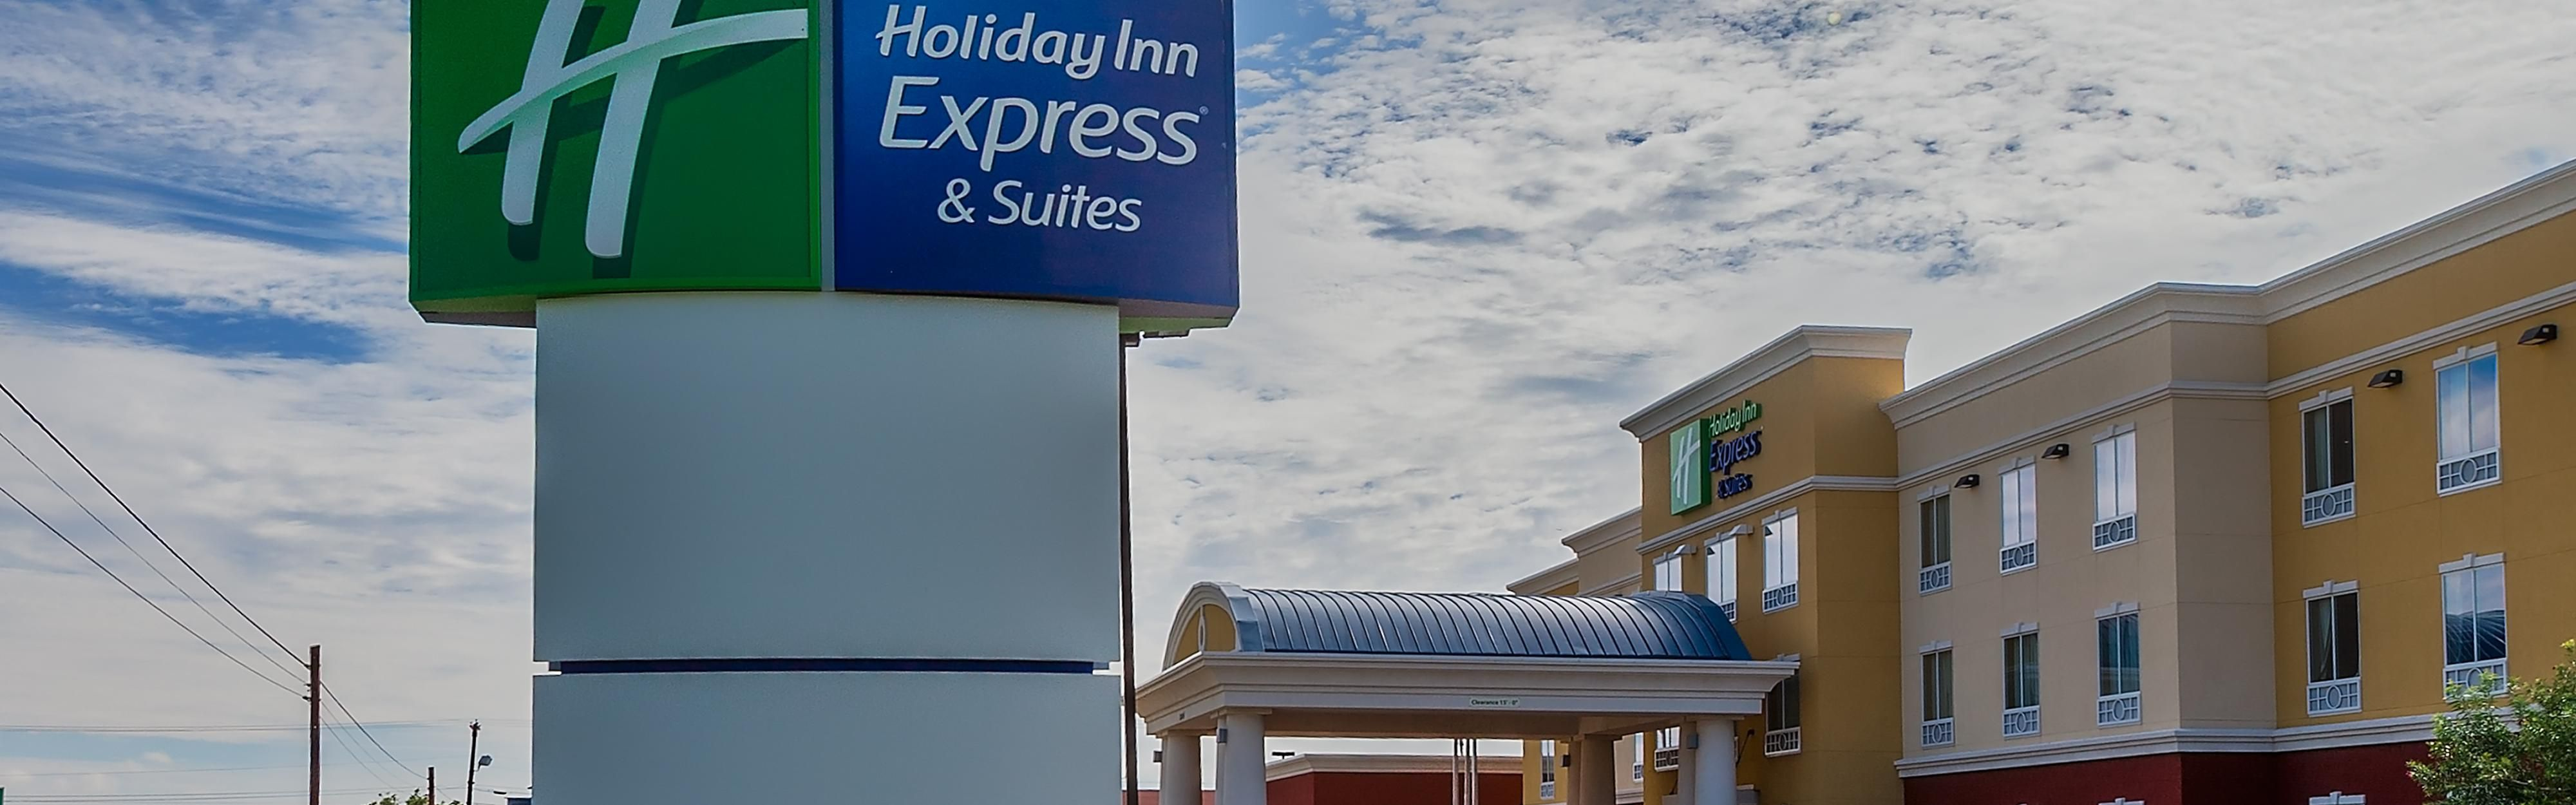 Holiday Inn Express & Suites Alpine Southeast image 0